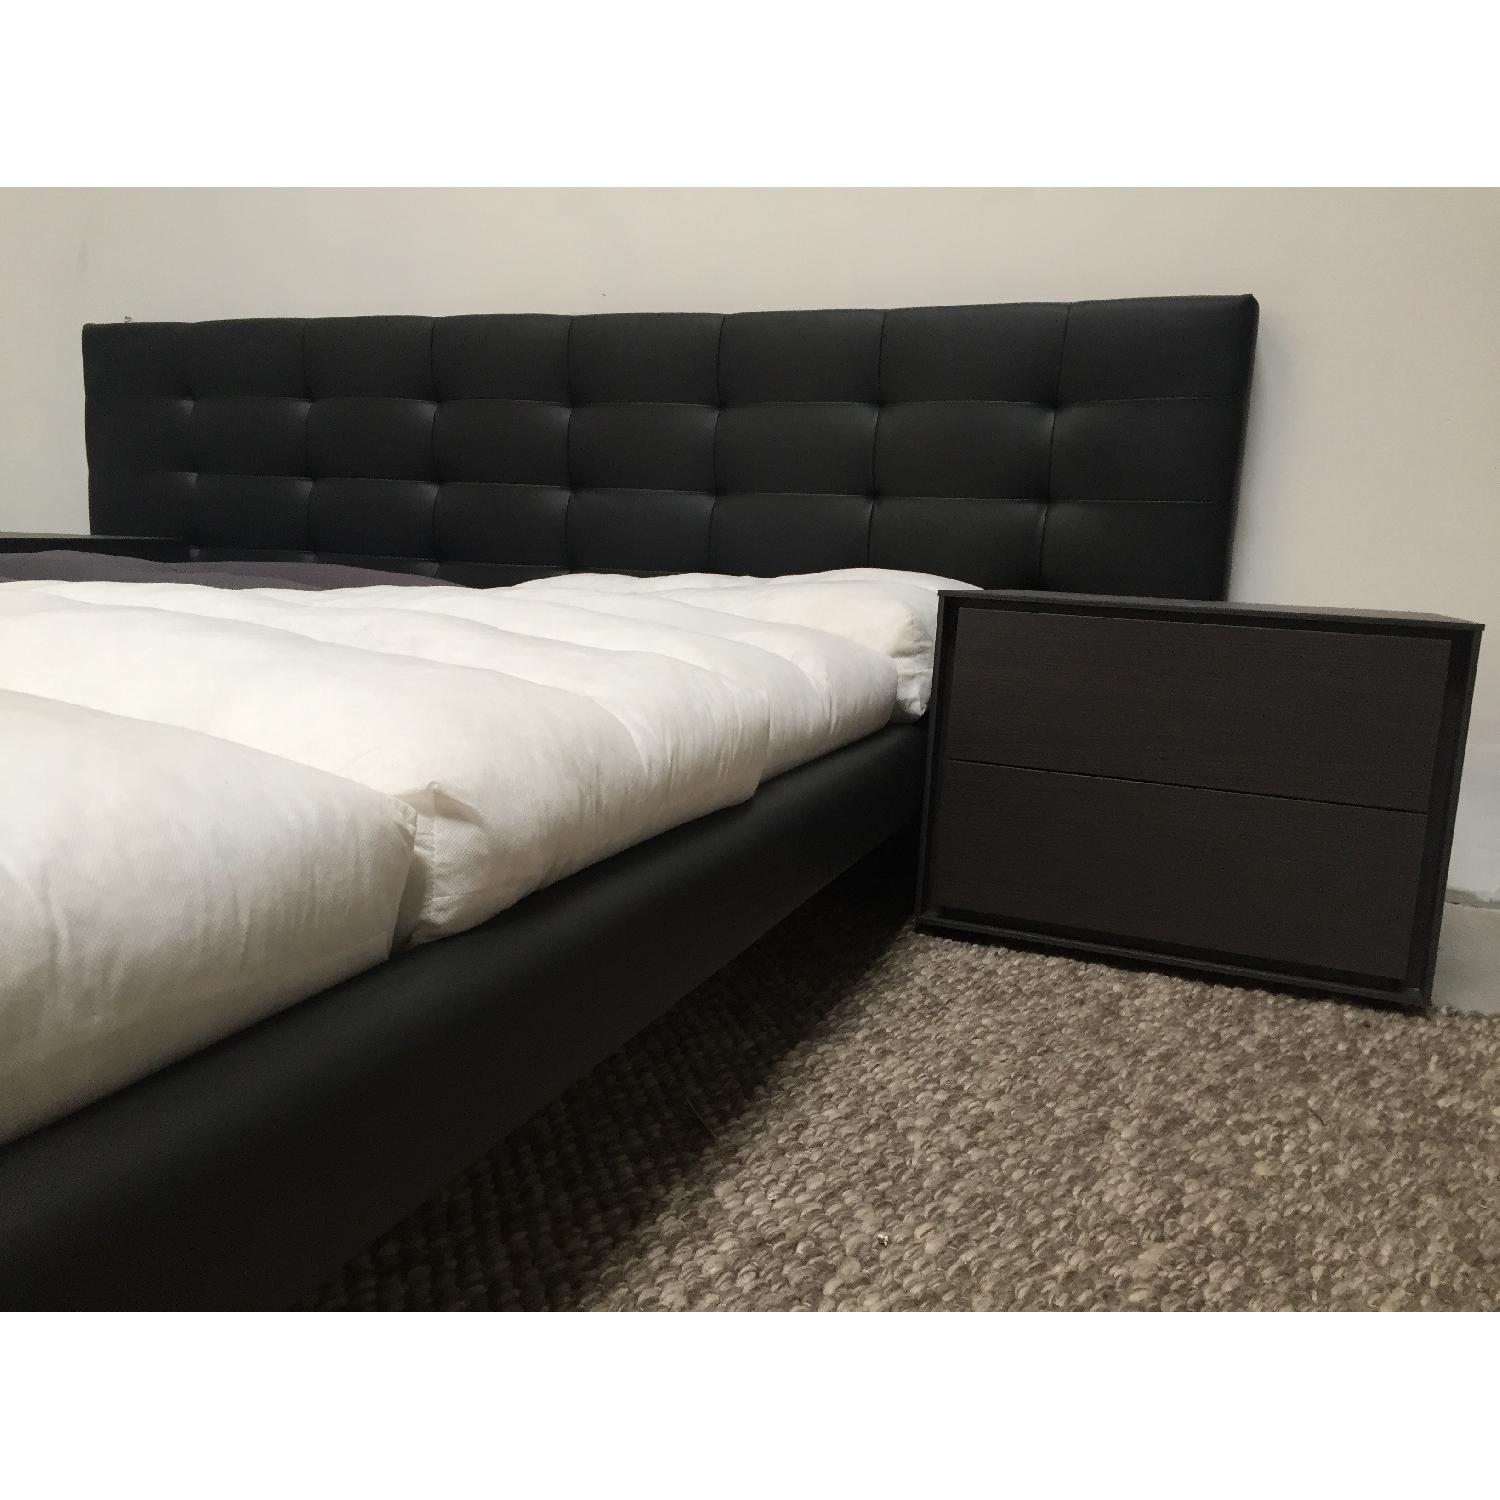 Lazzoni Black Leather Queen Size Bed Frame - image-10